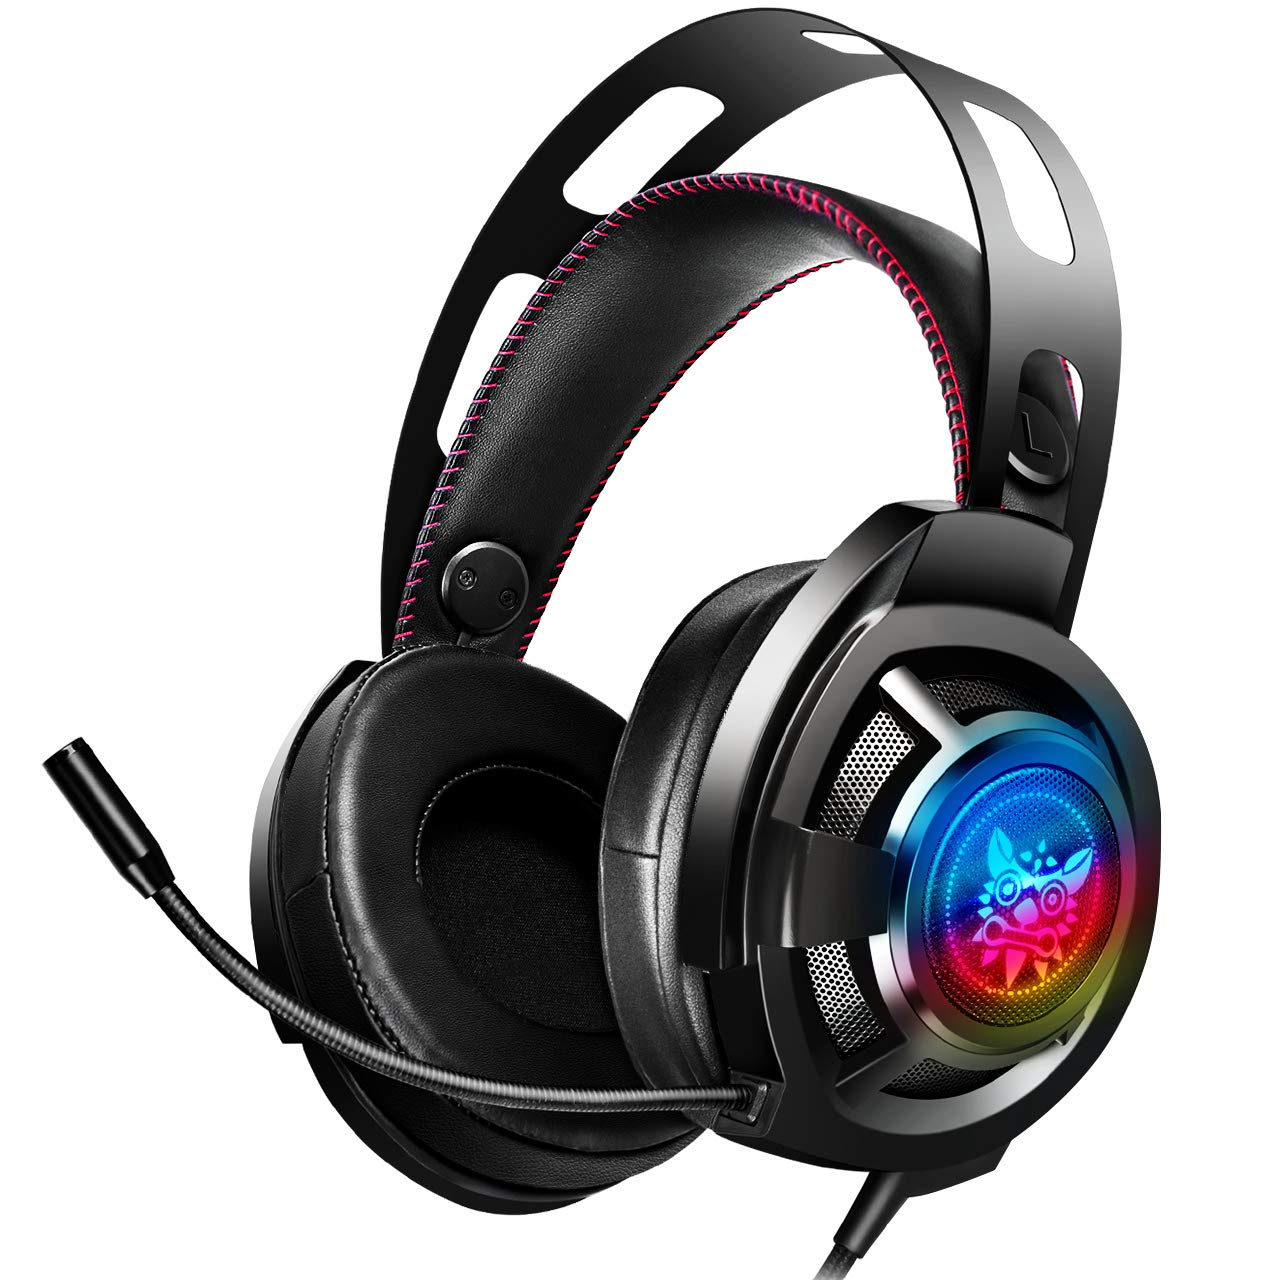 ONIKUMA Gaming Headset for PS4, Xbox One, PC, Nintendo Switch, Mac, Noise Cancelling Over-Ear Headphones with Mic, Soft Memory Earmuff, Stereo Bass Surround & RGB LED Light, Mute & Volume Control by ONIKUMA